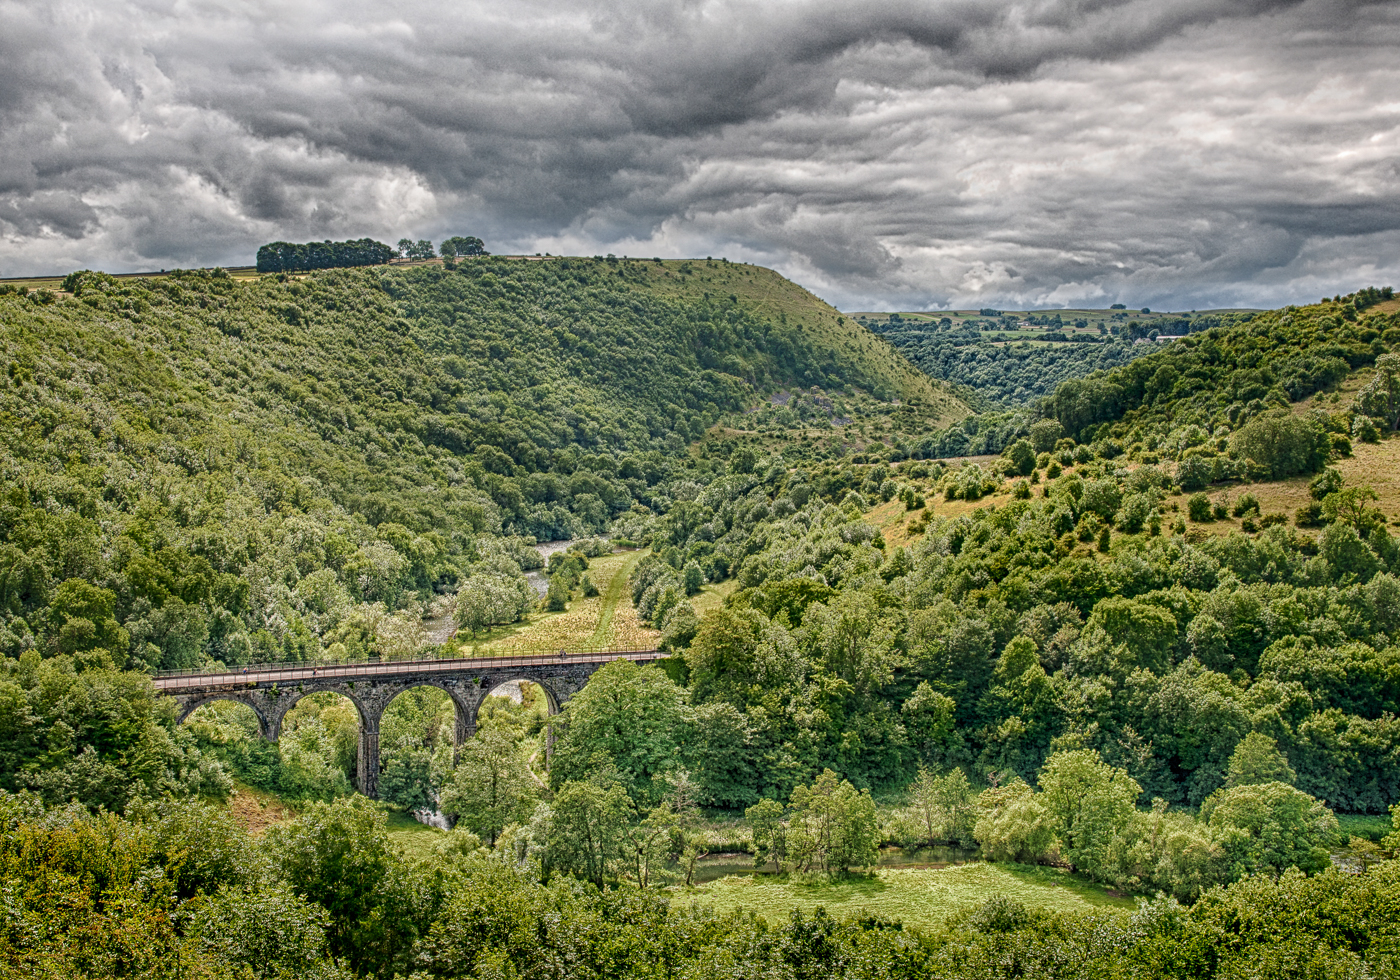 Storm brewing over Monsal Dale